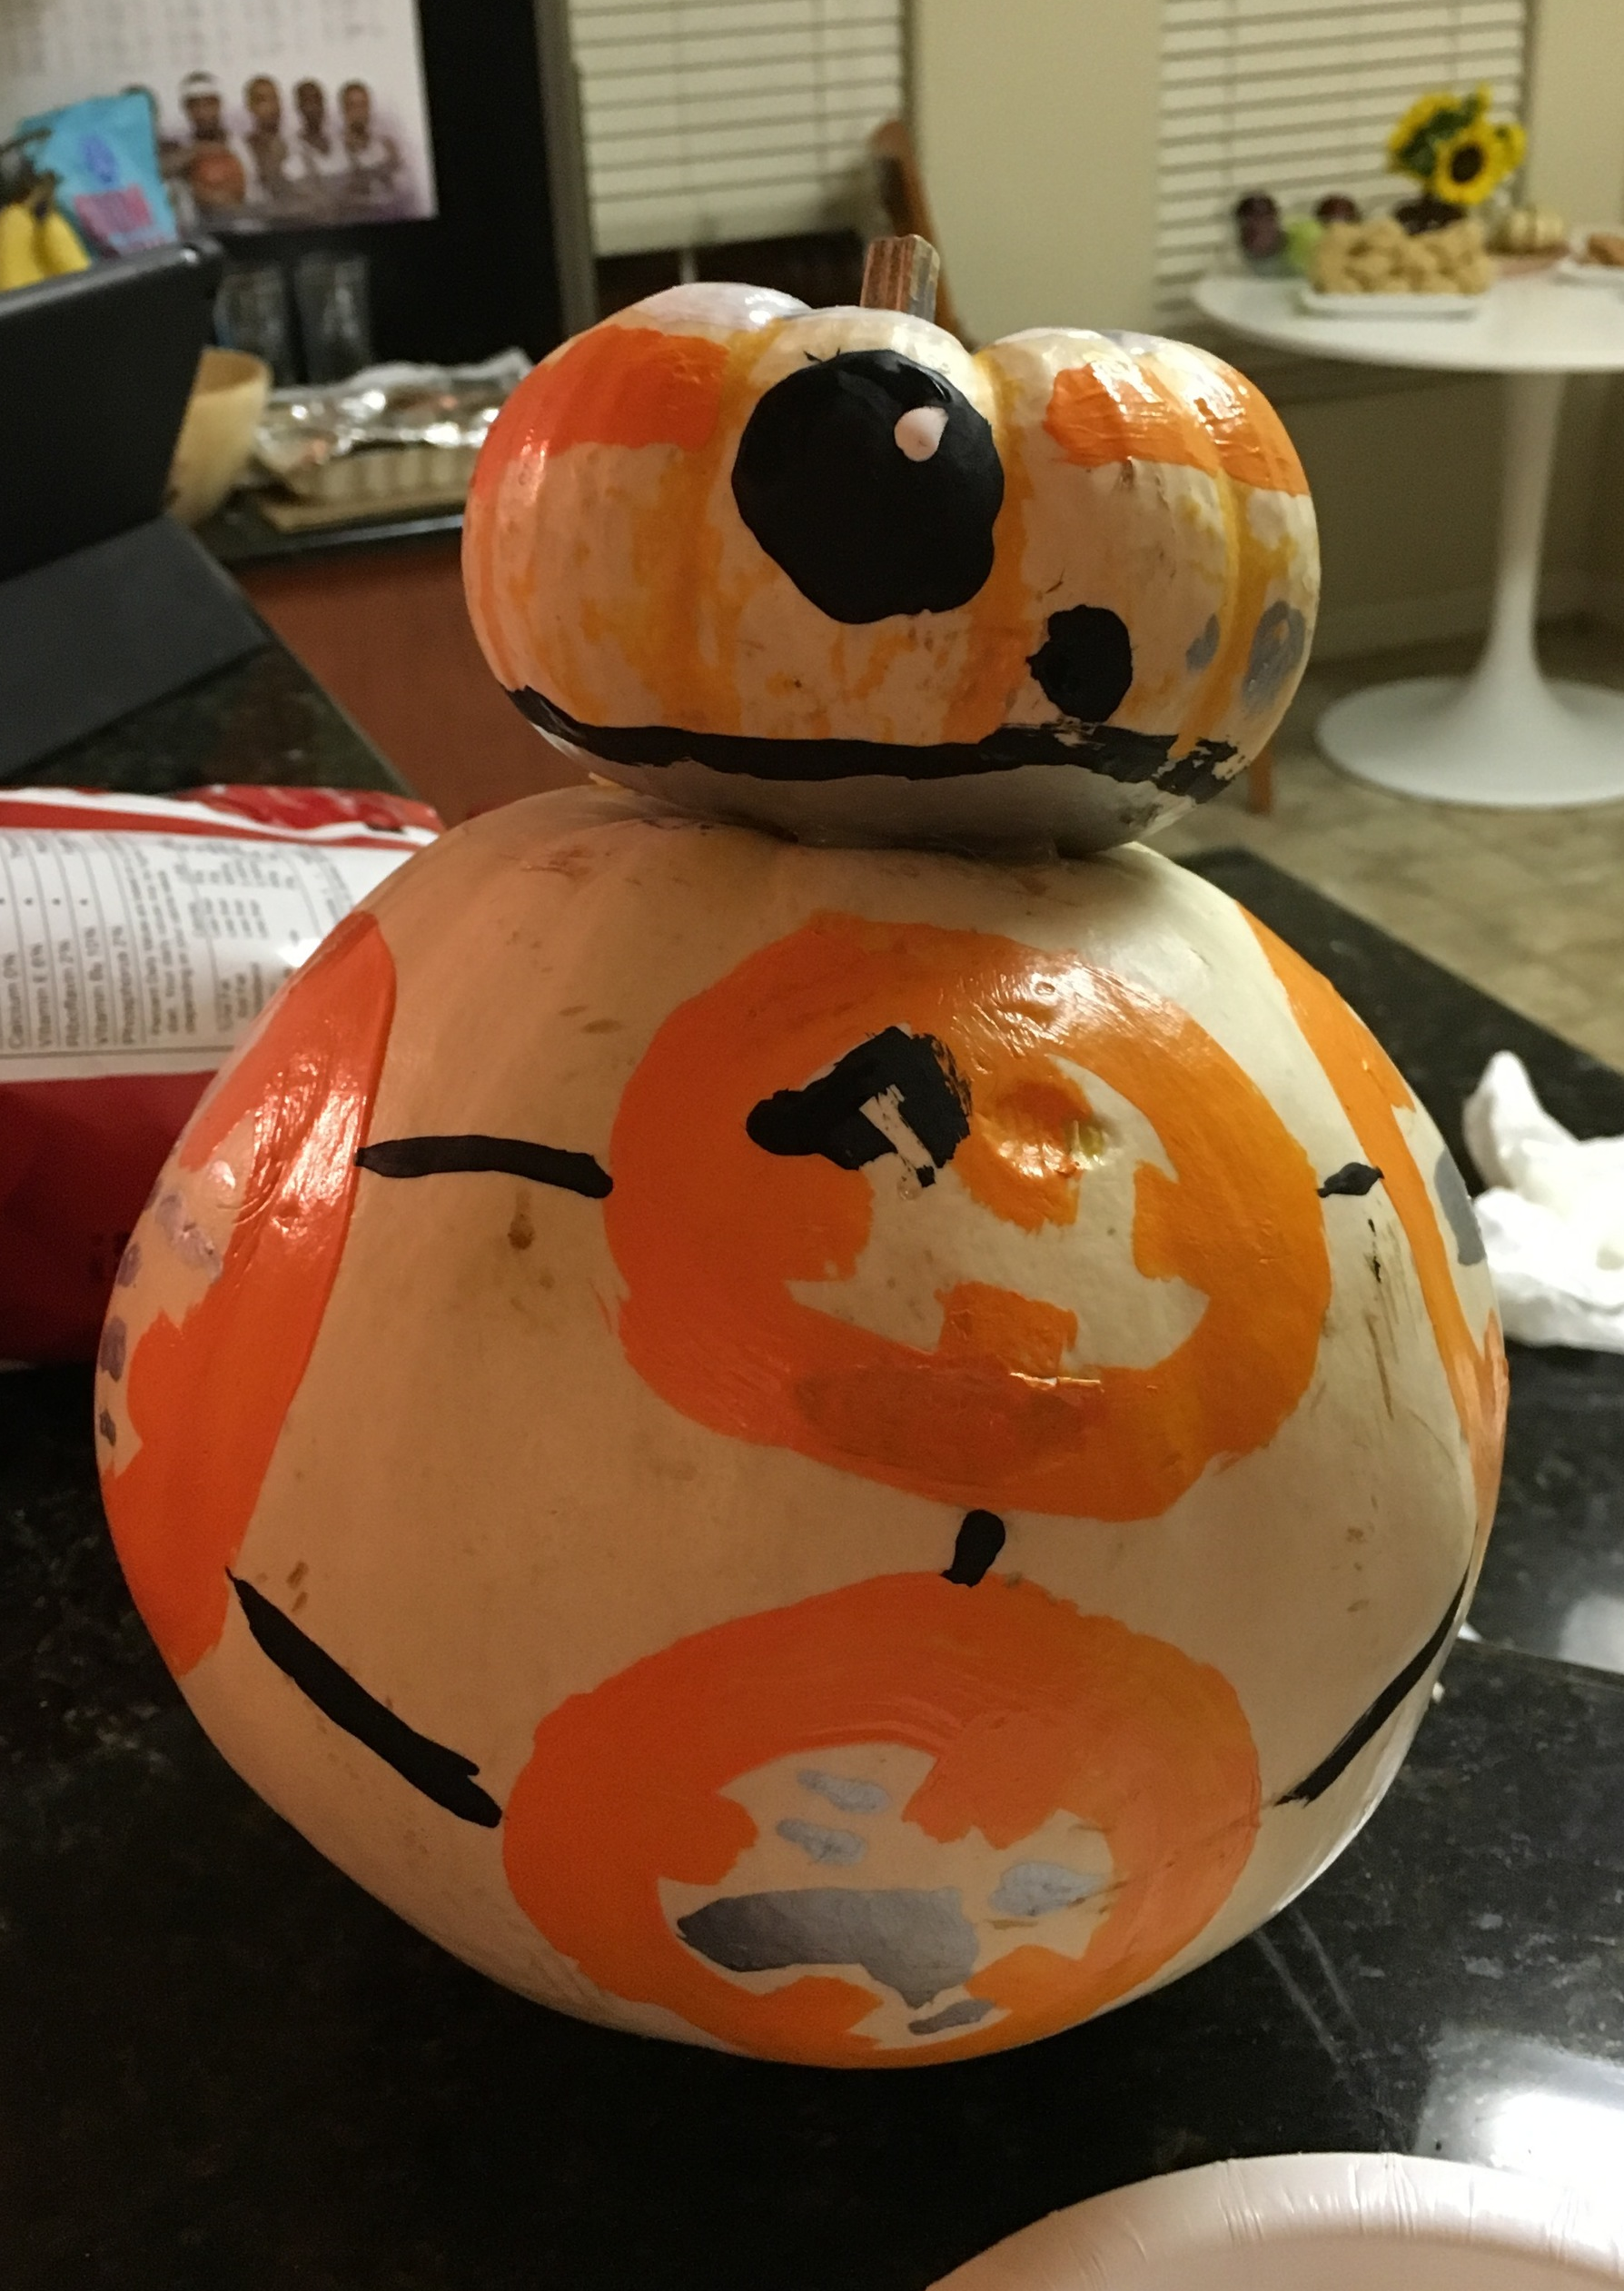 Chase really brought the creativity with his  Star Wars BB-8 replica . I'm so impressed by his painting and crafting skills. The glue gun was used.